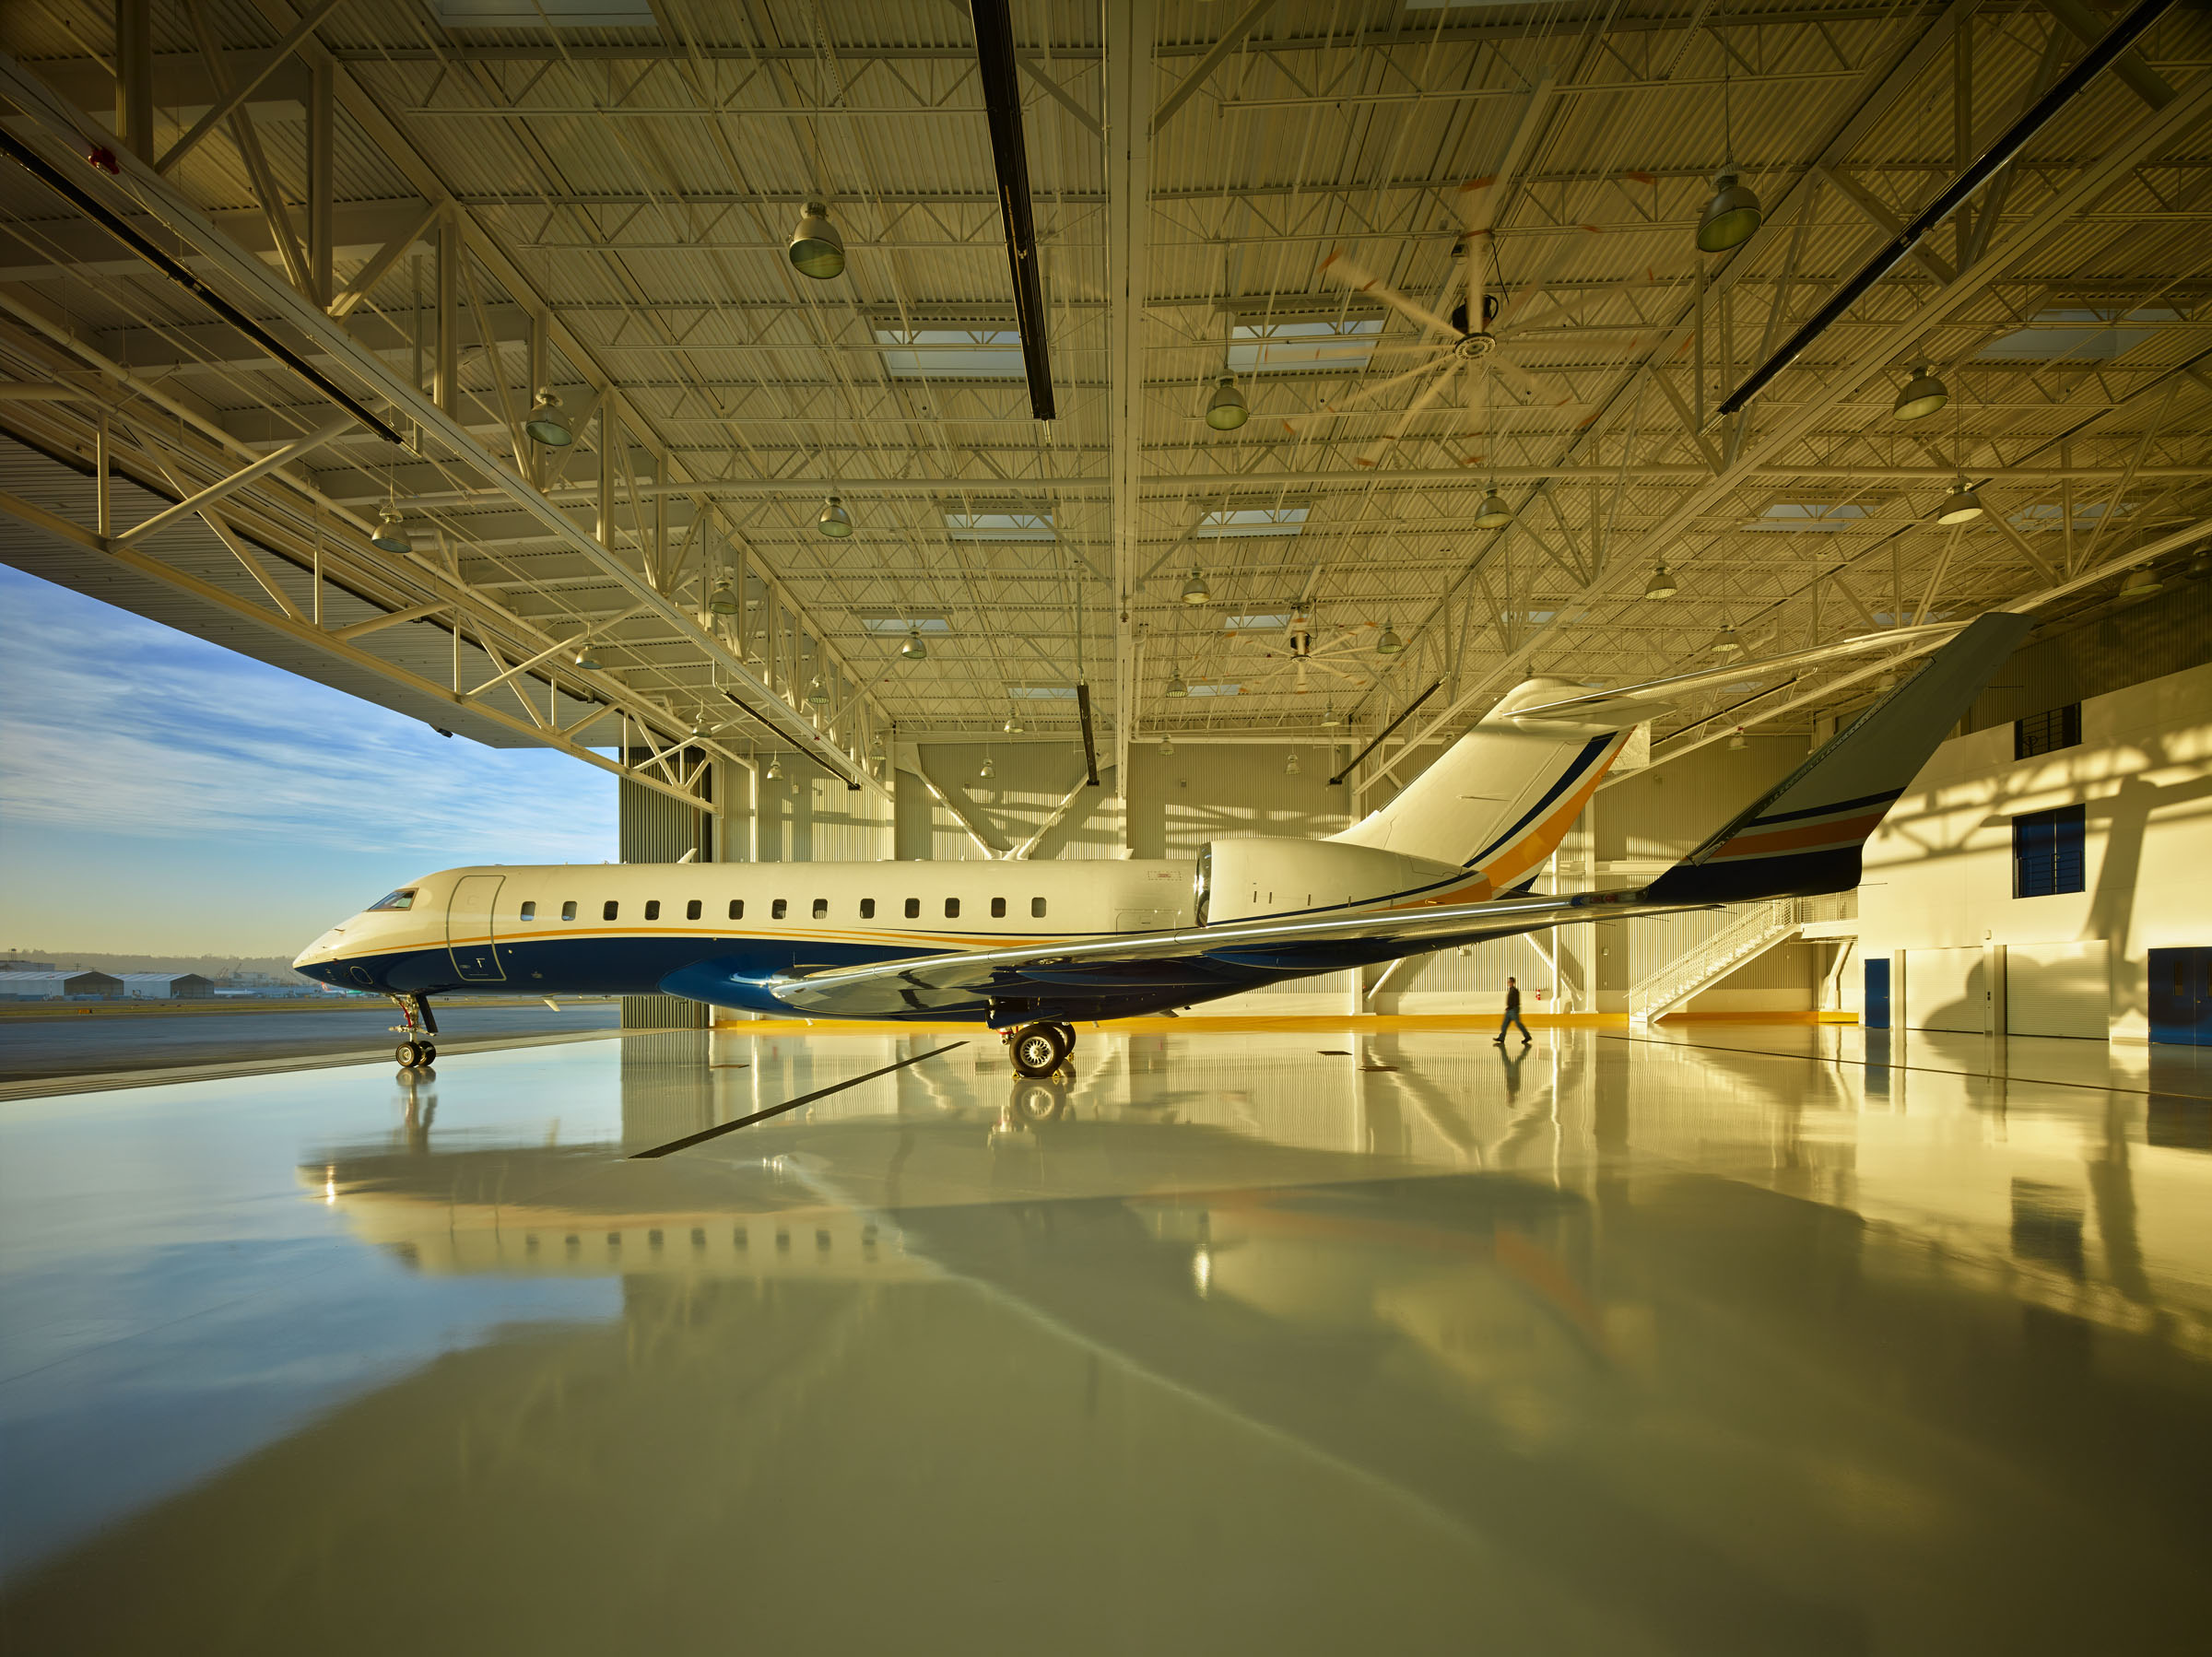 Northwest Airplane Hangar